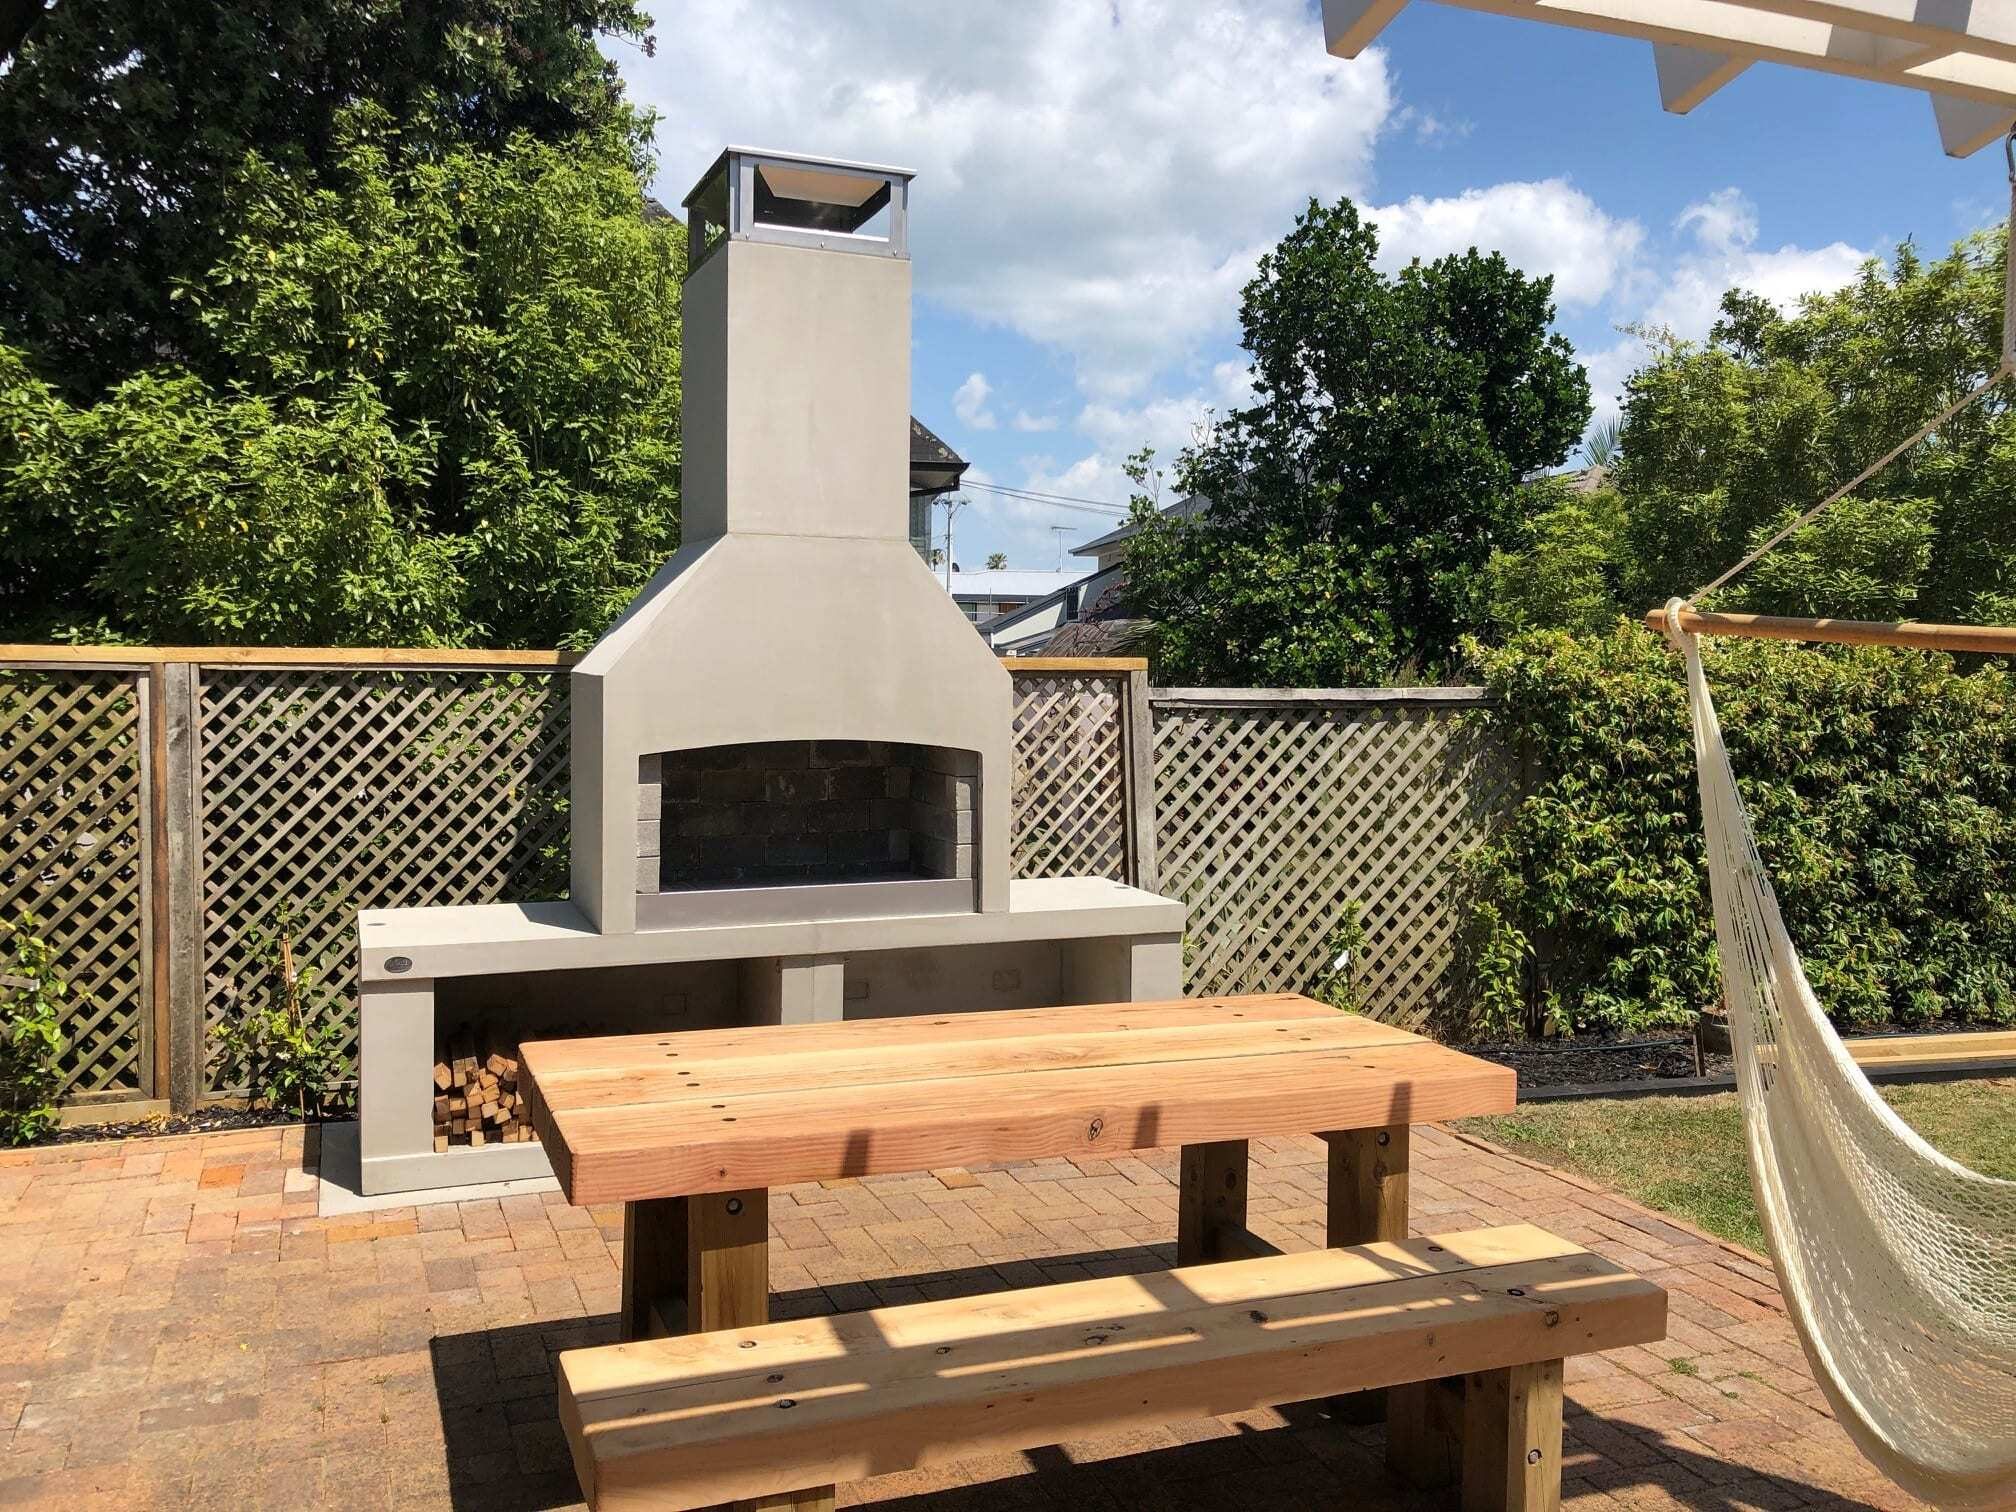 A perfect picnic spot in the backyard in front of a Flare Premier Outdoor fire